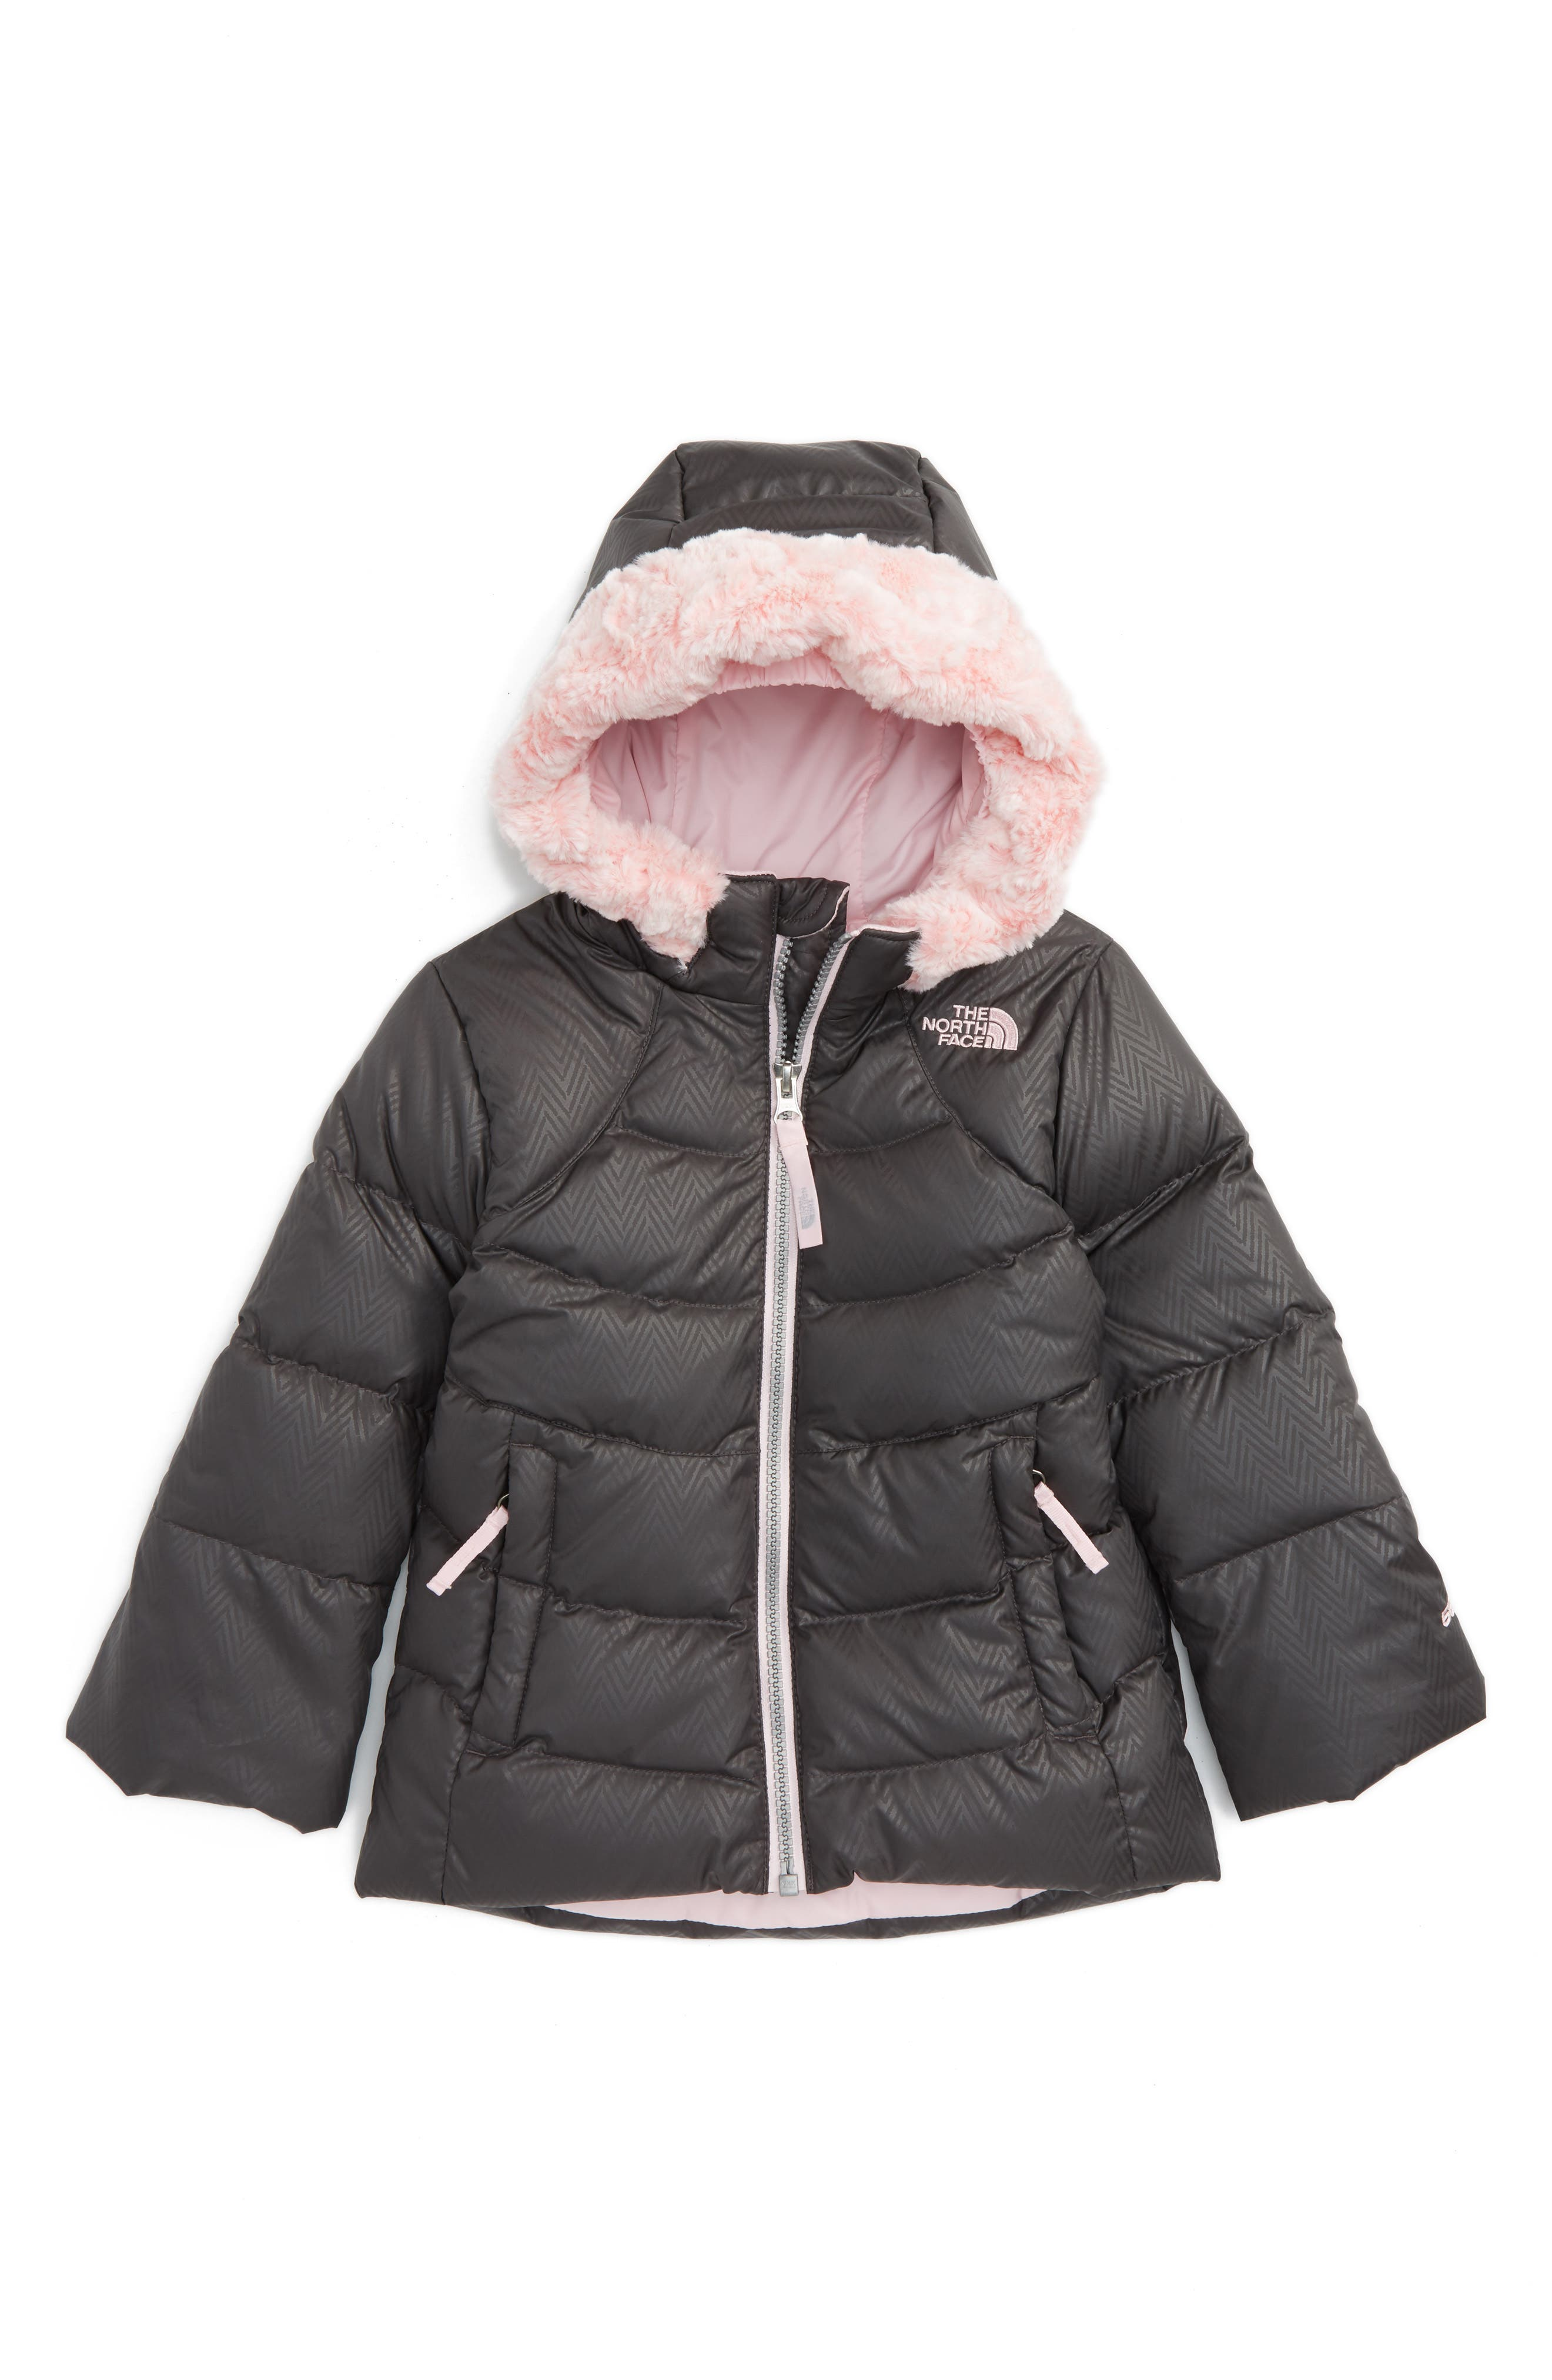 The North Face Polar Water Repellent Down Parka (Toddler Girls & Little Girls)